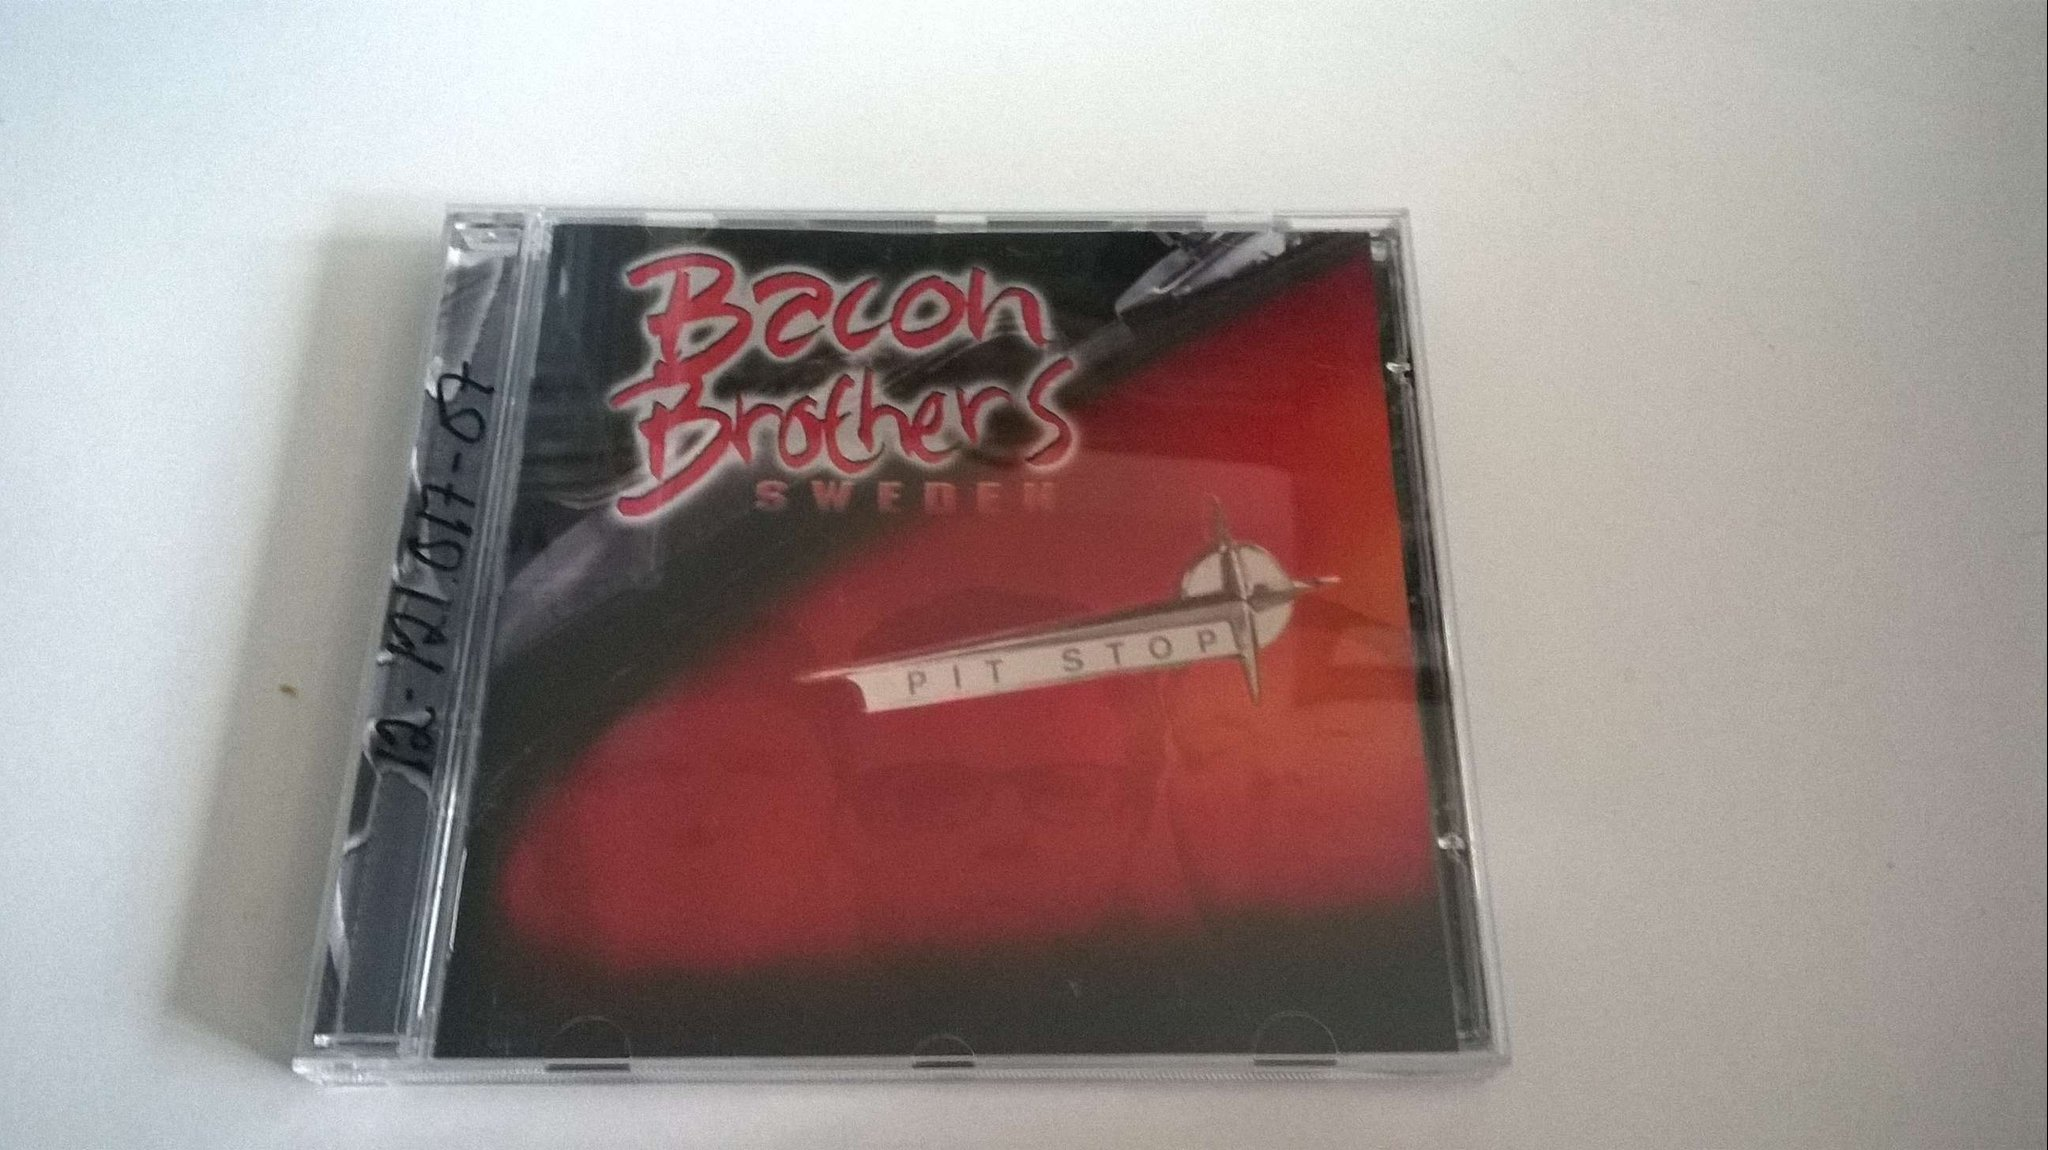 Bacon Brothers - Pit Stop, CD